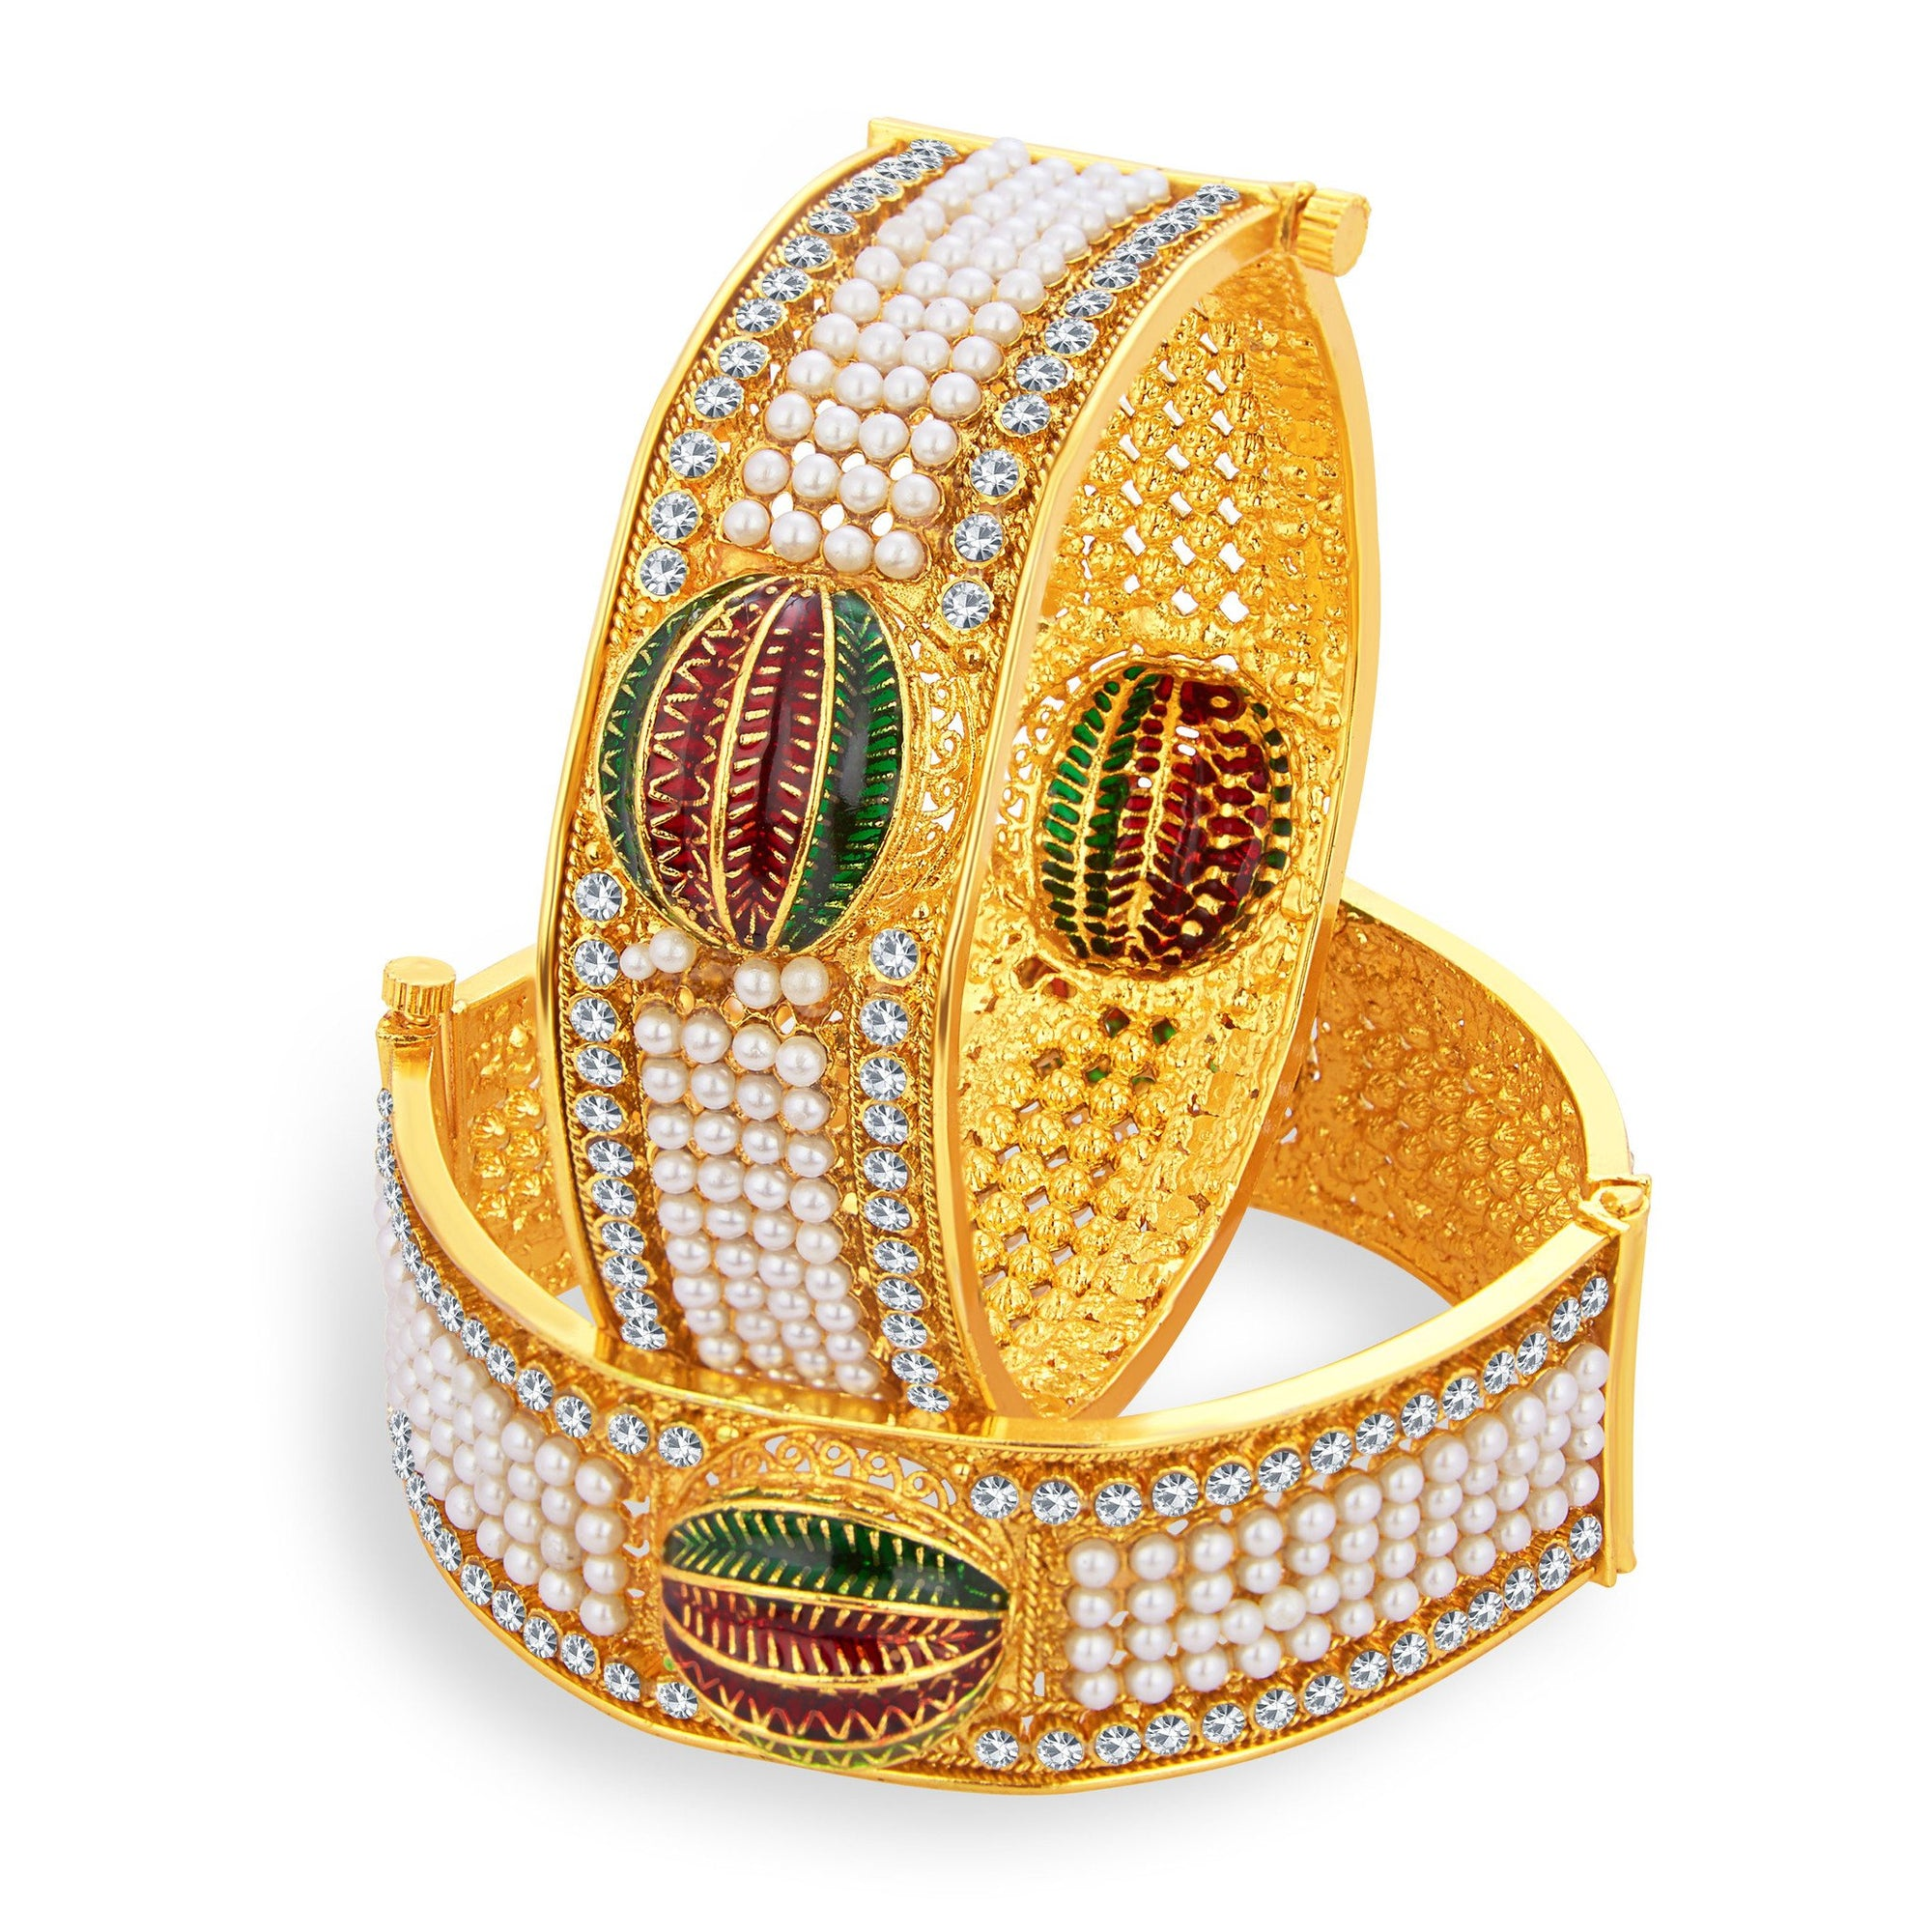 c7c1fb27160 Sukkhi Royal Gold Plated Pearl AD Bangle For Women - Sukkhiglobal